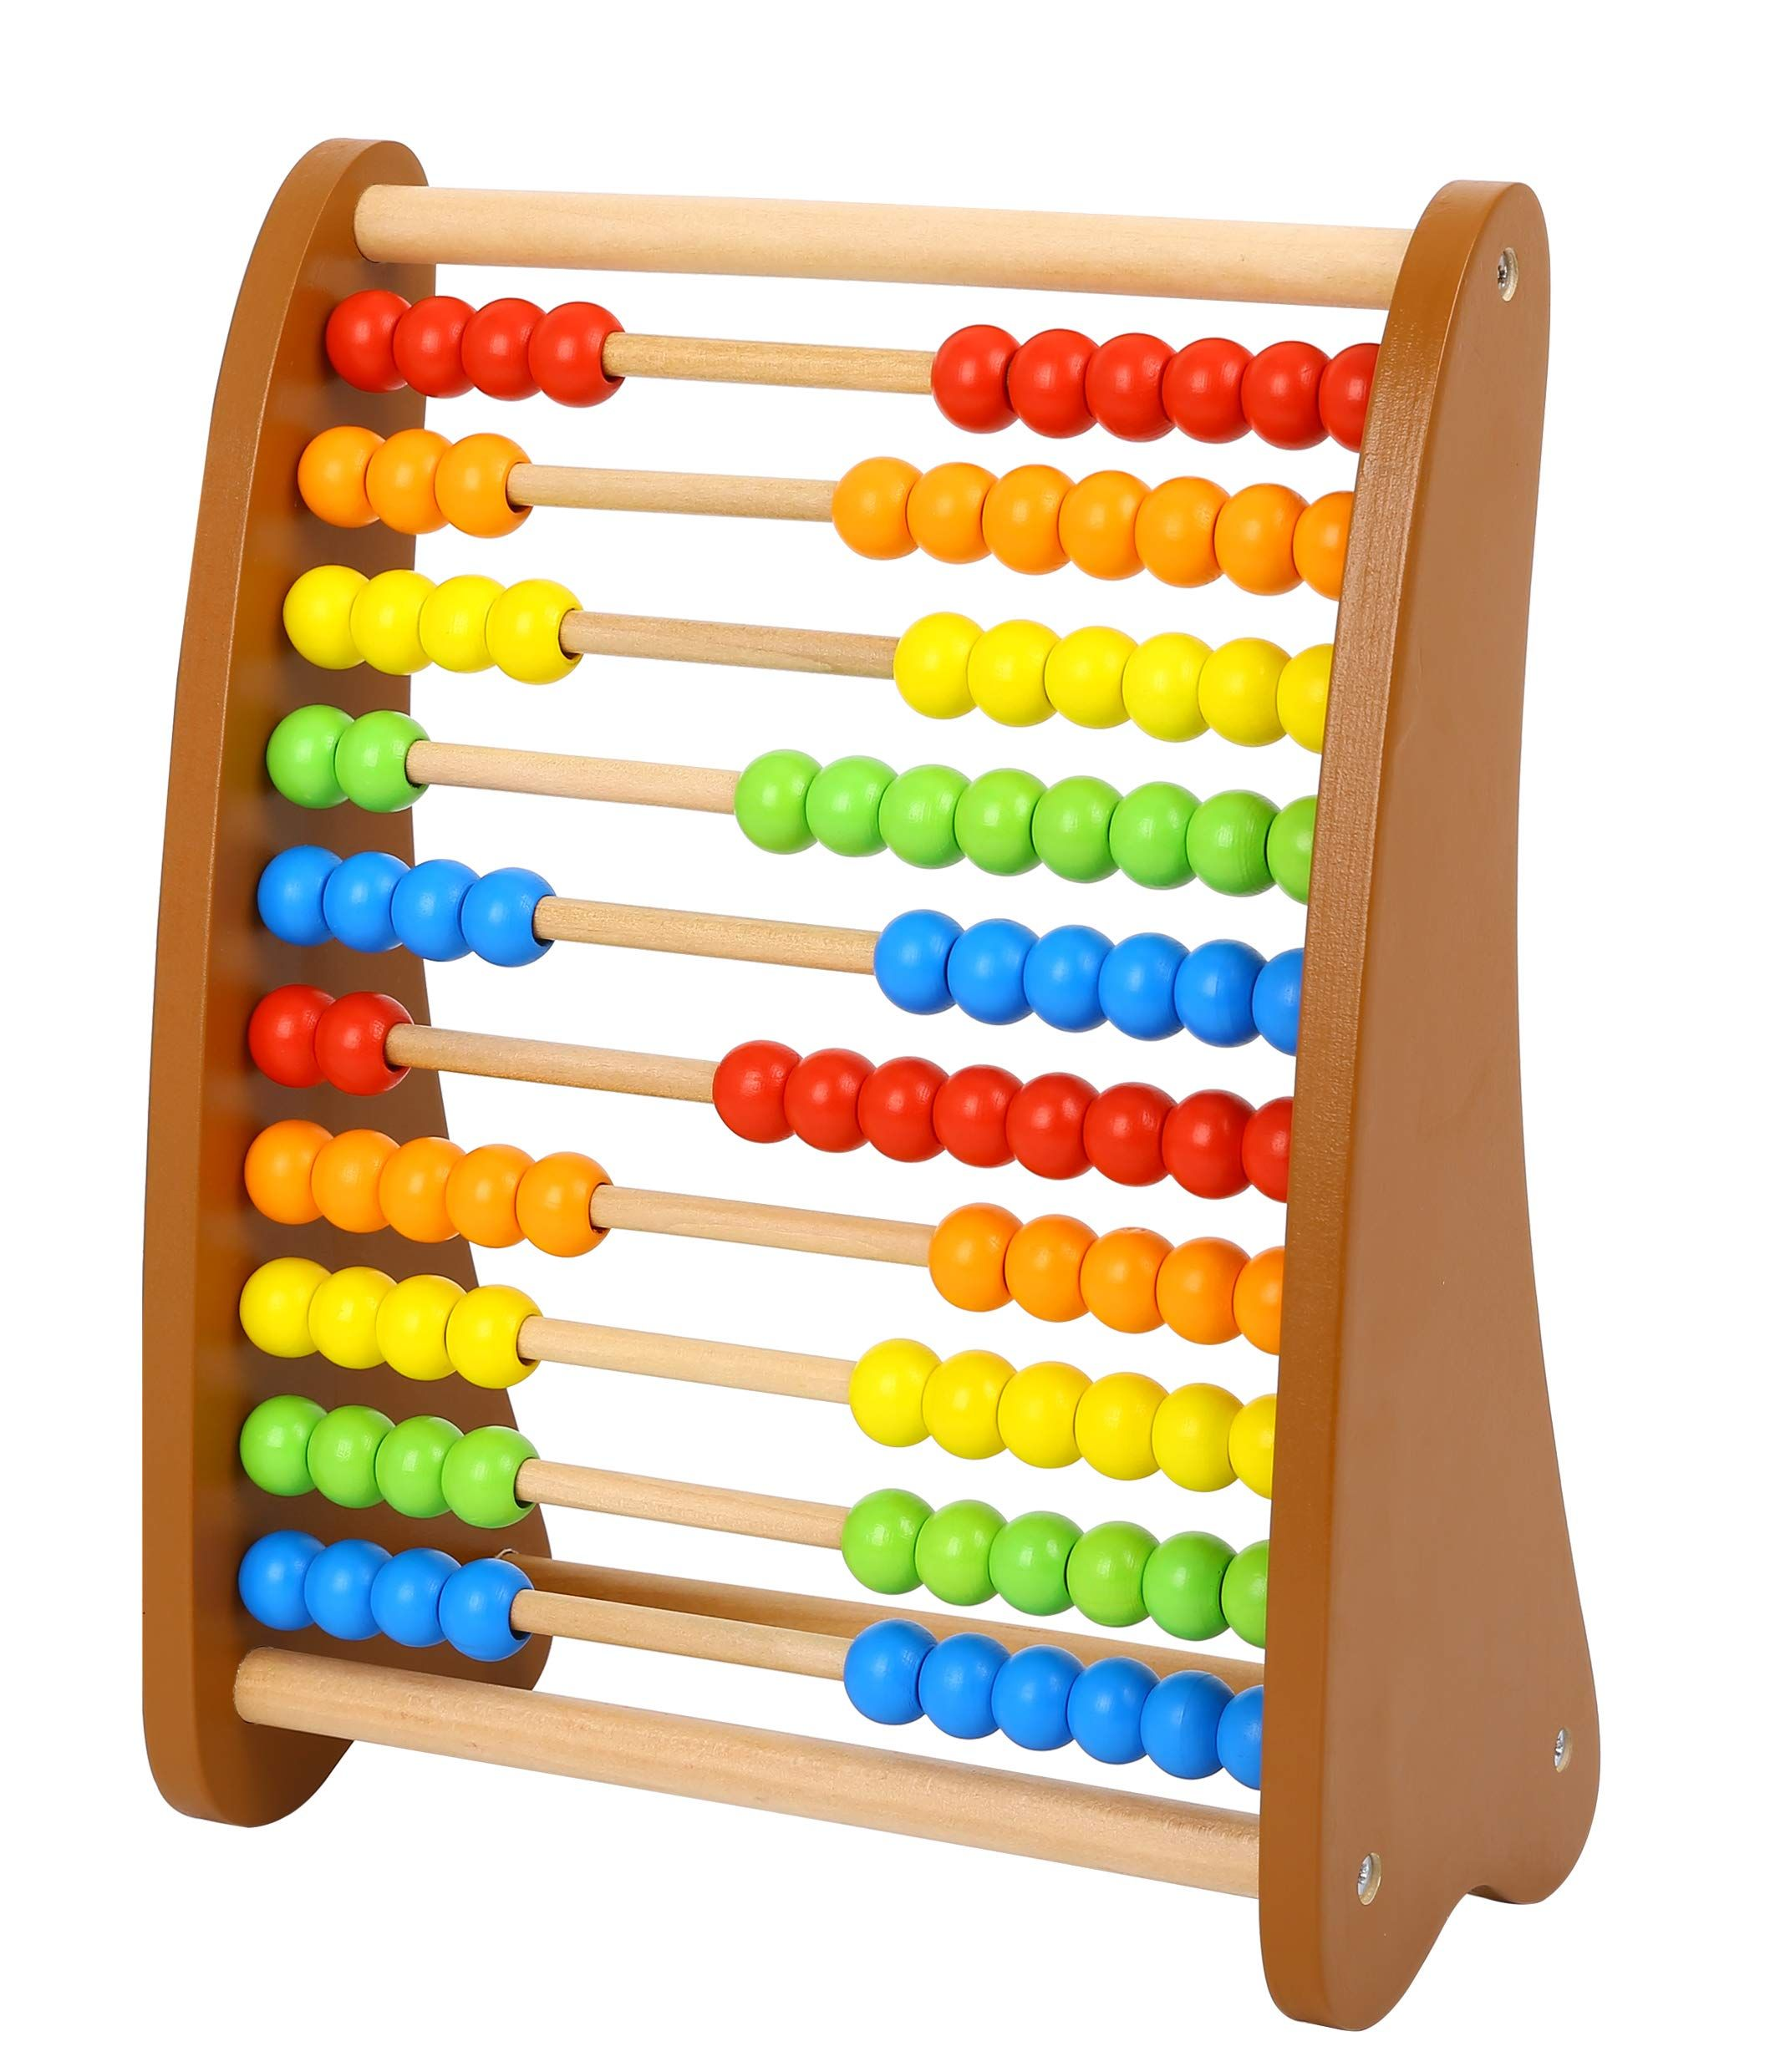 Wooden Abacus Classic Counting Tool Early Learning Develpmental Toy Multi Colored Beads 10 Extensions 100 Bead Abacu Math Toys Early Learning Learning Toys [ 2480 x 2112 Pixel ]